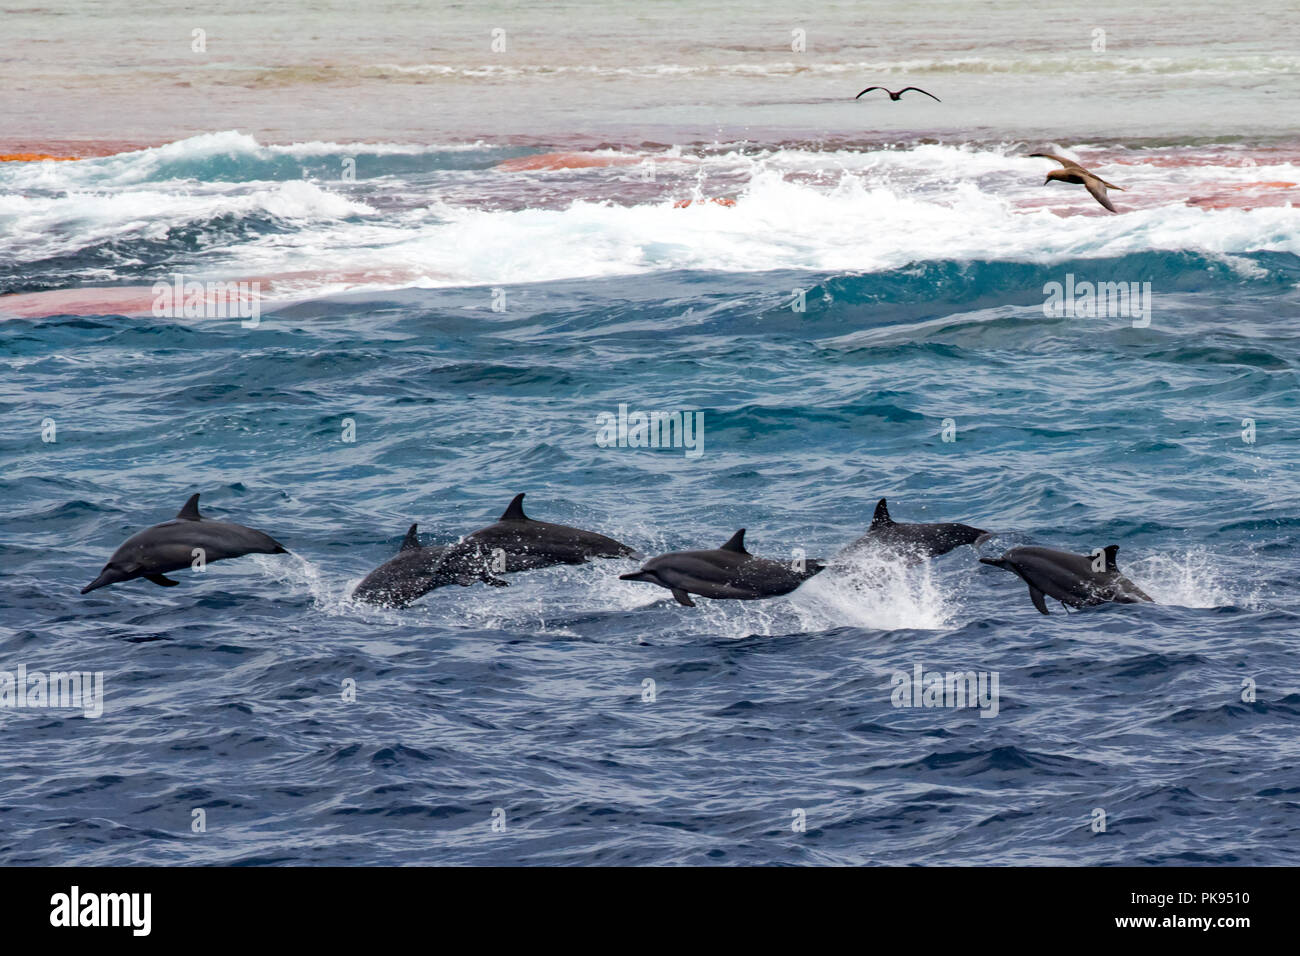 A pod of spinner dolphins leap along the reef at Millennium atoll in the southern line islands of Kiribati. - Stock Image